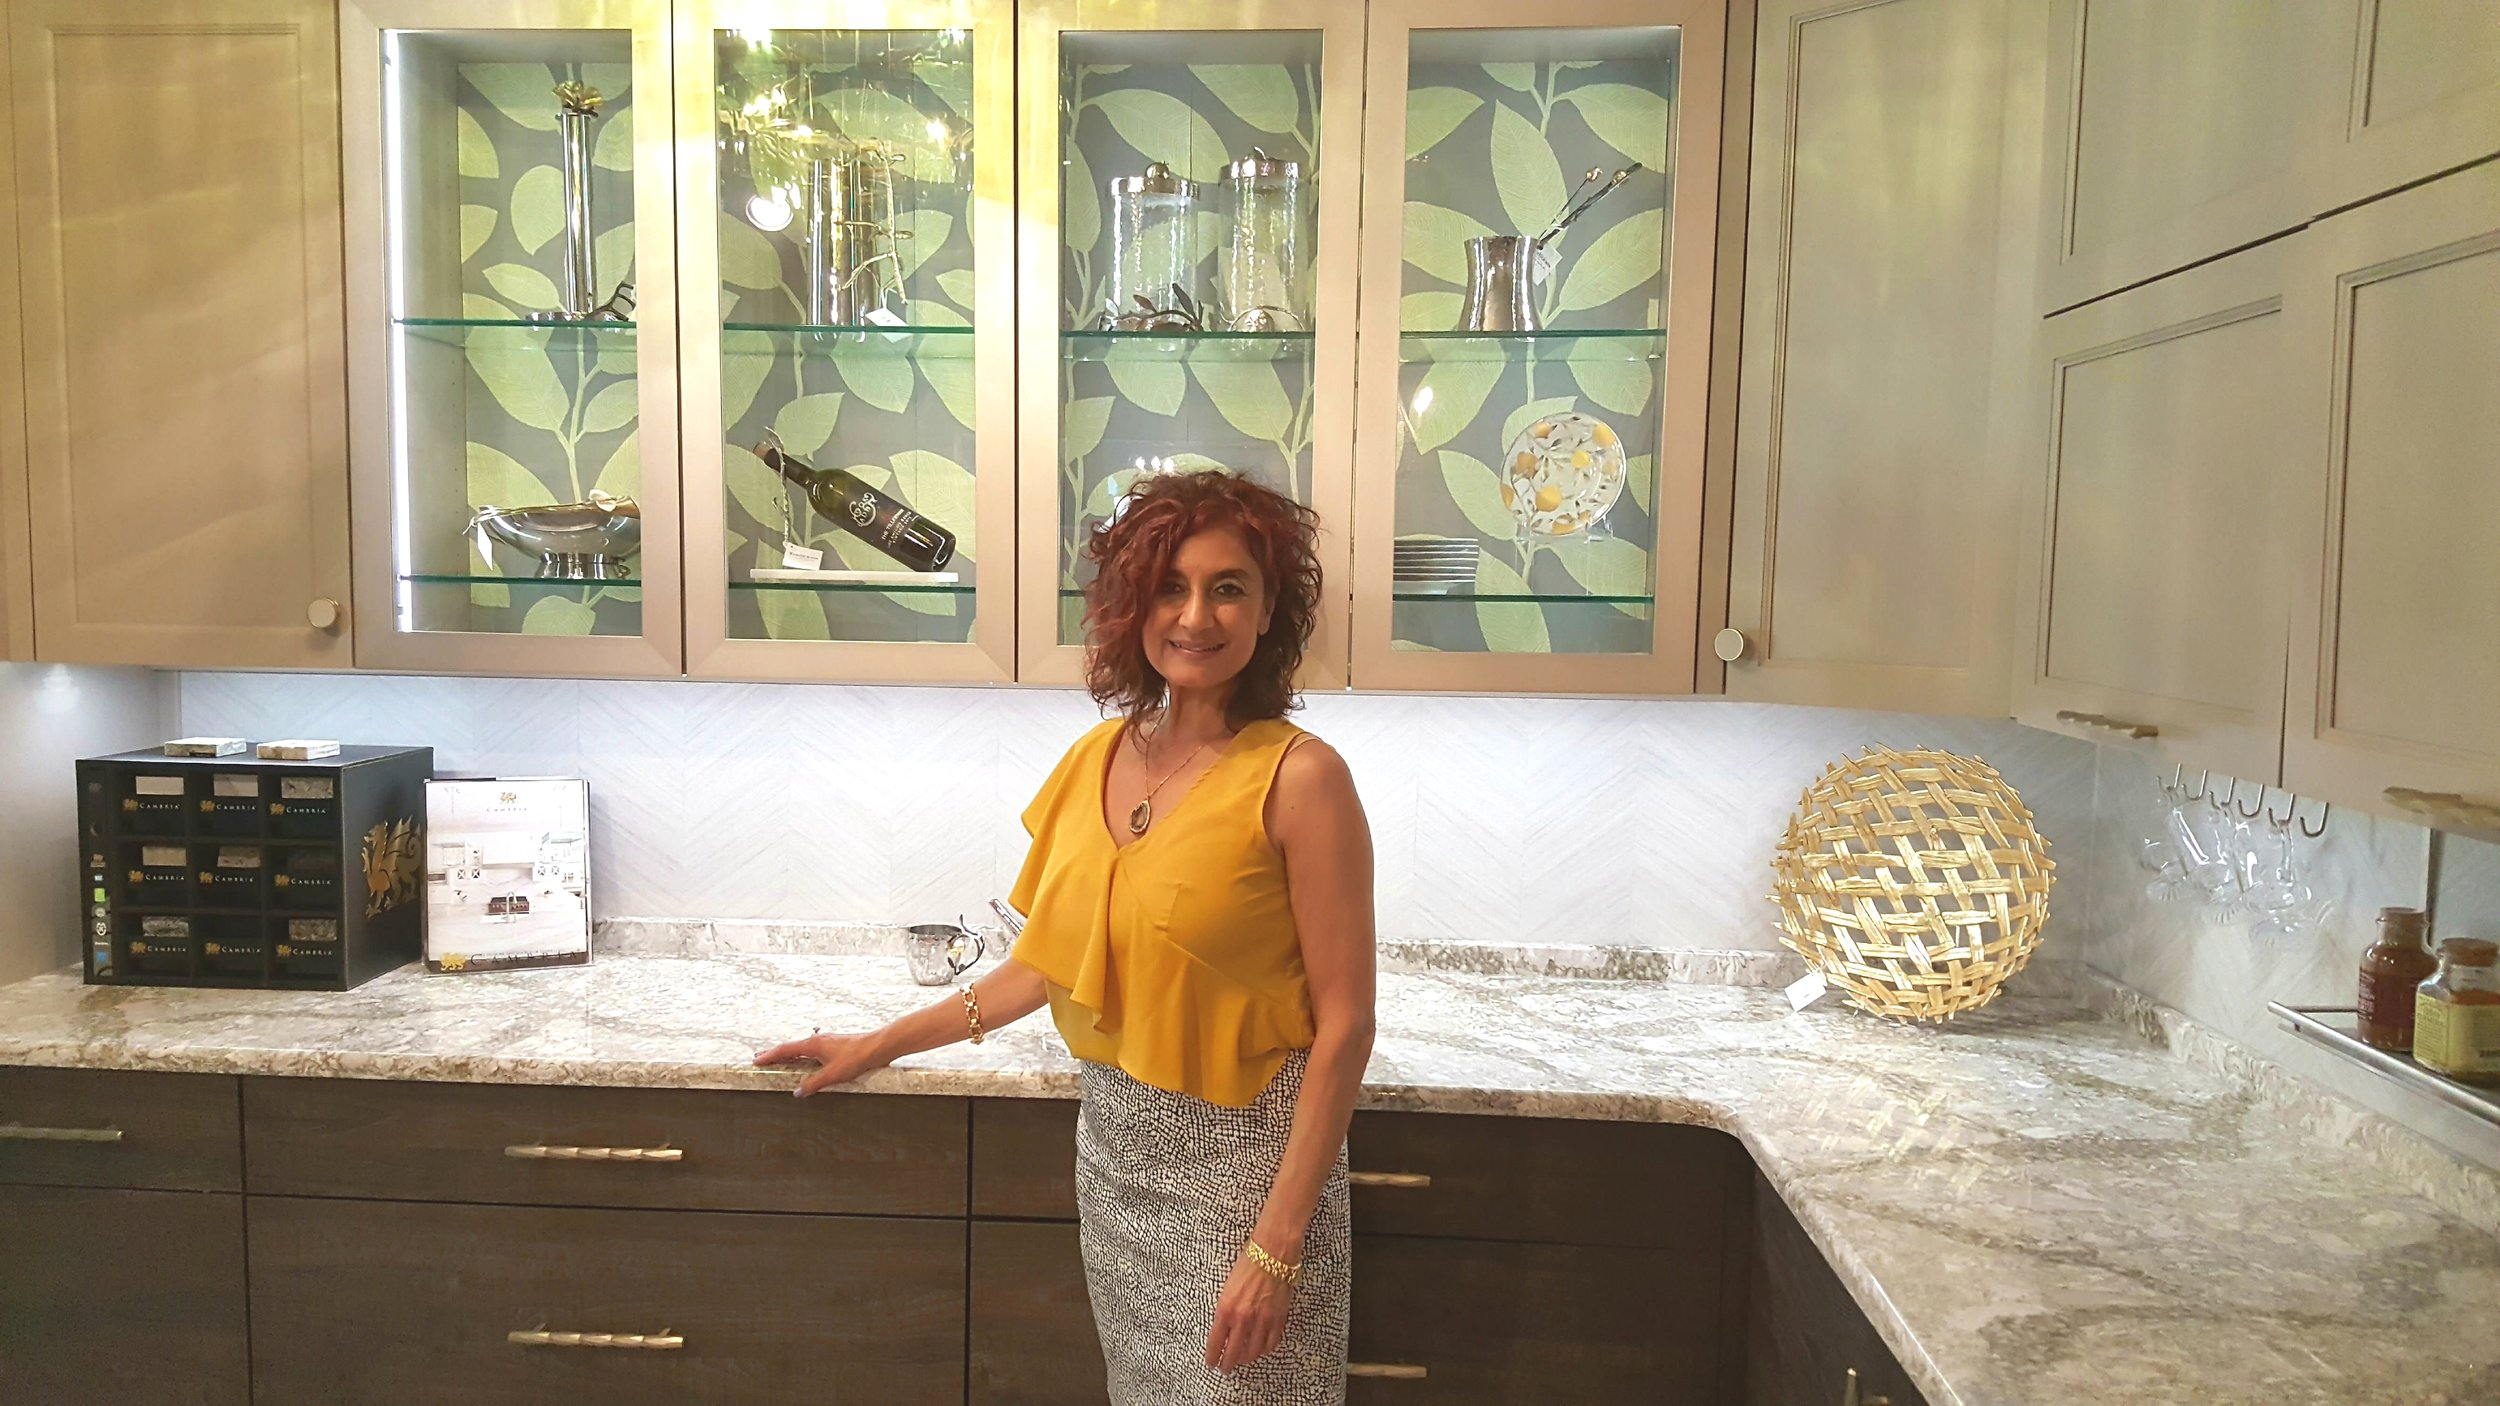 Owner Ellena Rose Gotto displays Mix of Metal Element doors, horizontal rustic grain, and a bit of pattern whimsy!